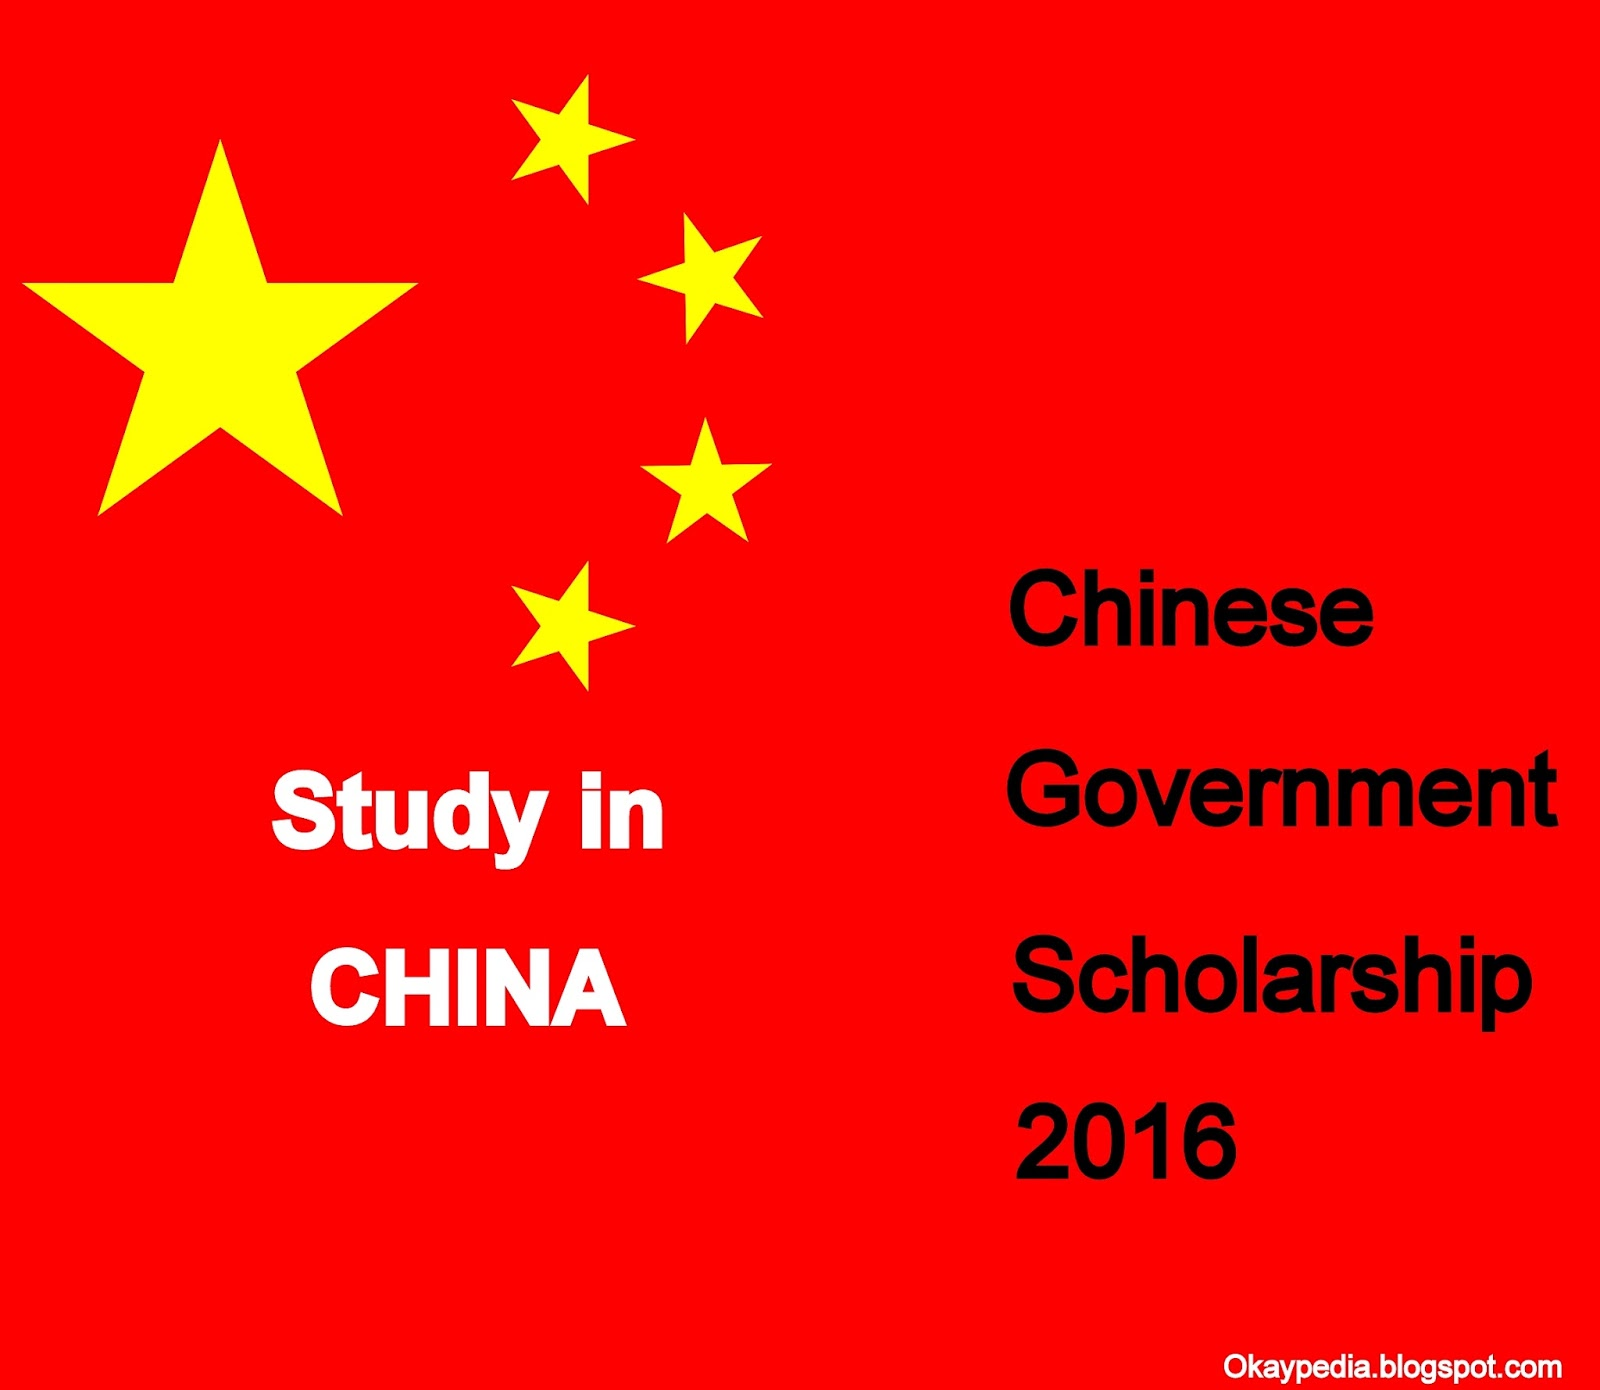 Application Form For Chinese Government Scholarship on eligibility form, scholarship icon, scholarship app, scholarship essay examples, scholarship program flyer, transcript request form, scholarship logo, scholarship information, financial aid form, scholarship statement of purpose, scholarship requirements, scholarship notification, scholarship opportunities, scholarship essay on leadership, scholarship money, scholarship clip art, scholarship banner, scholarship quotes, scholarship checklist, scholarship deadlines,